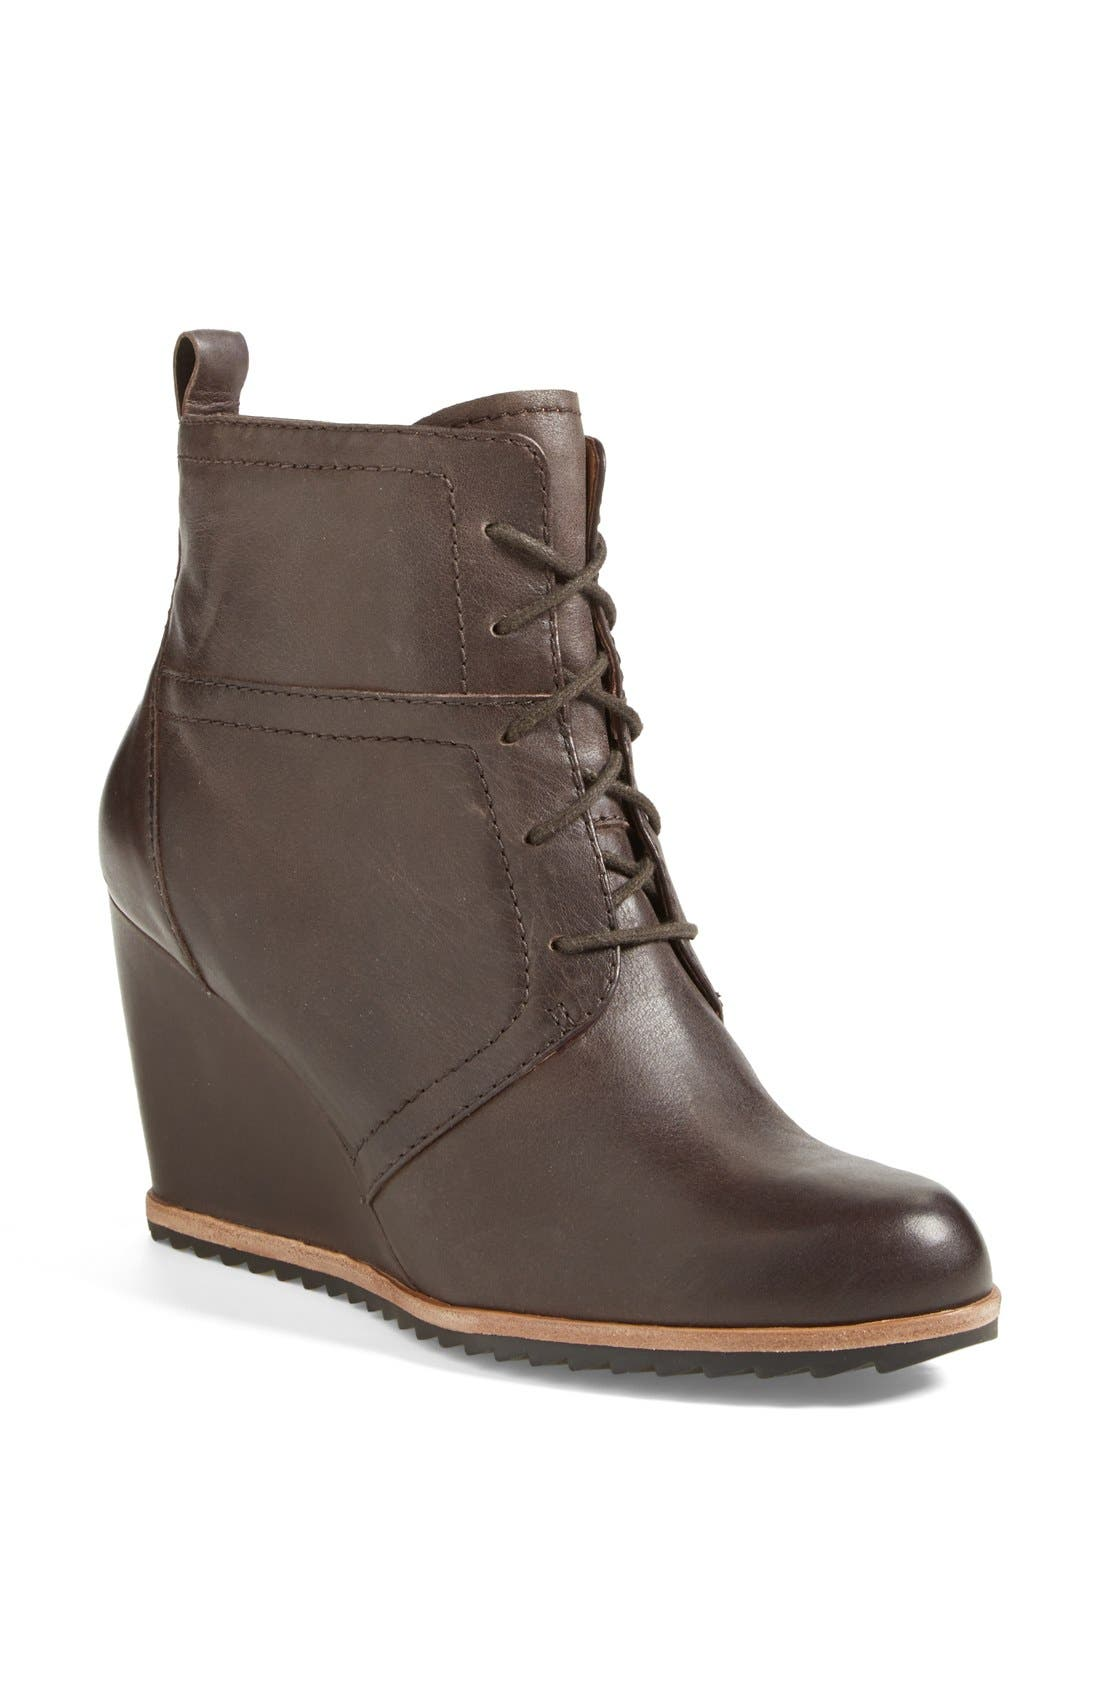 Alternate Image 1 Selected - Biala 'Alyssa' Lace-Up Wedge Boot (Women)